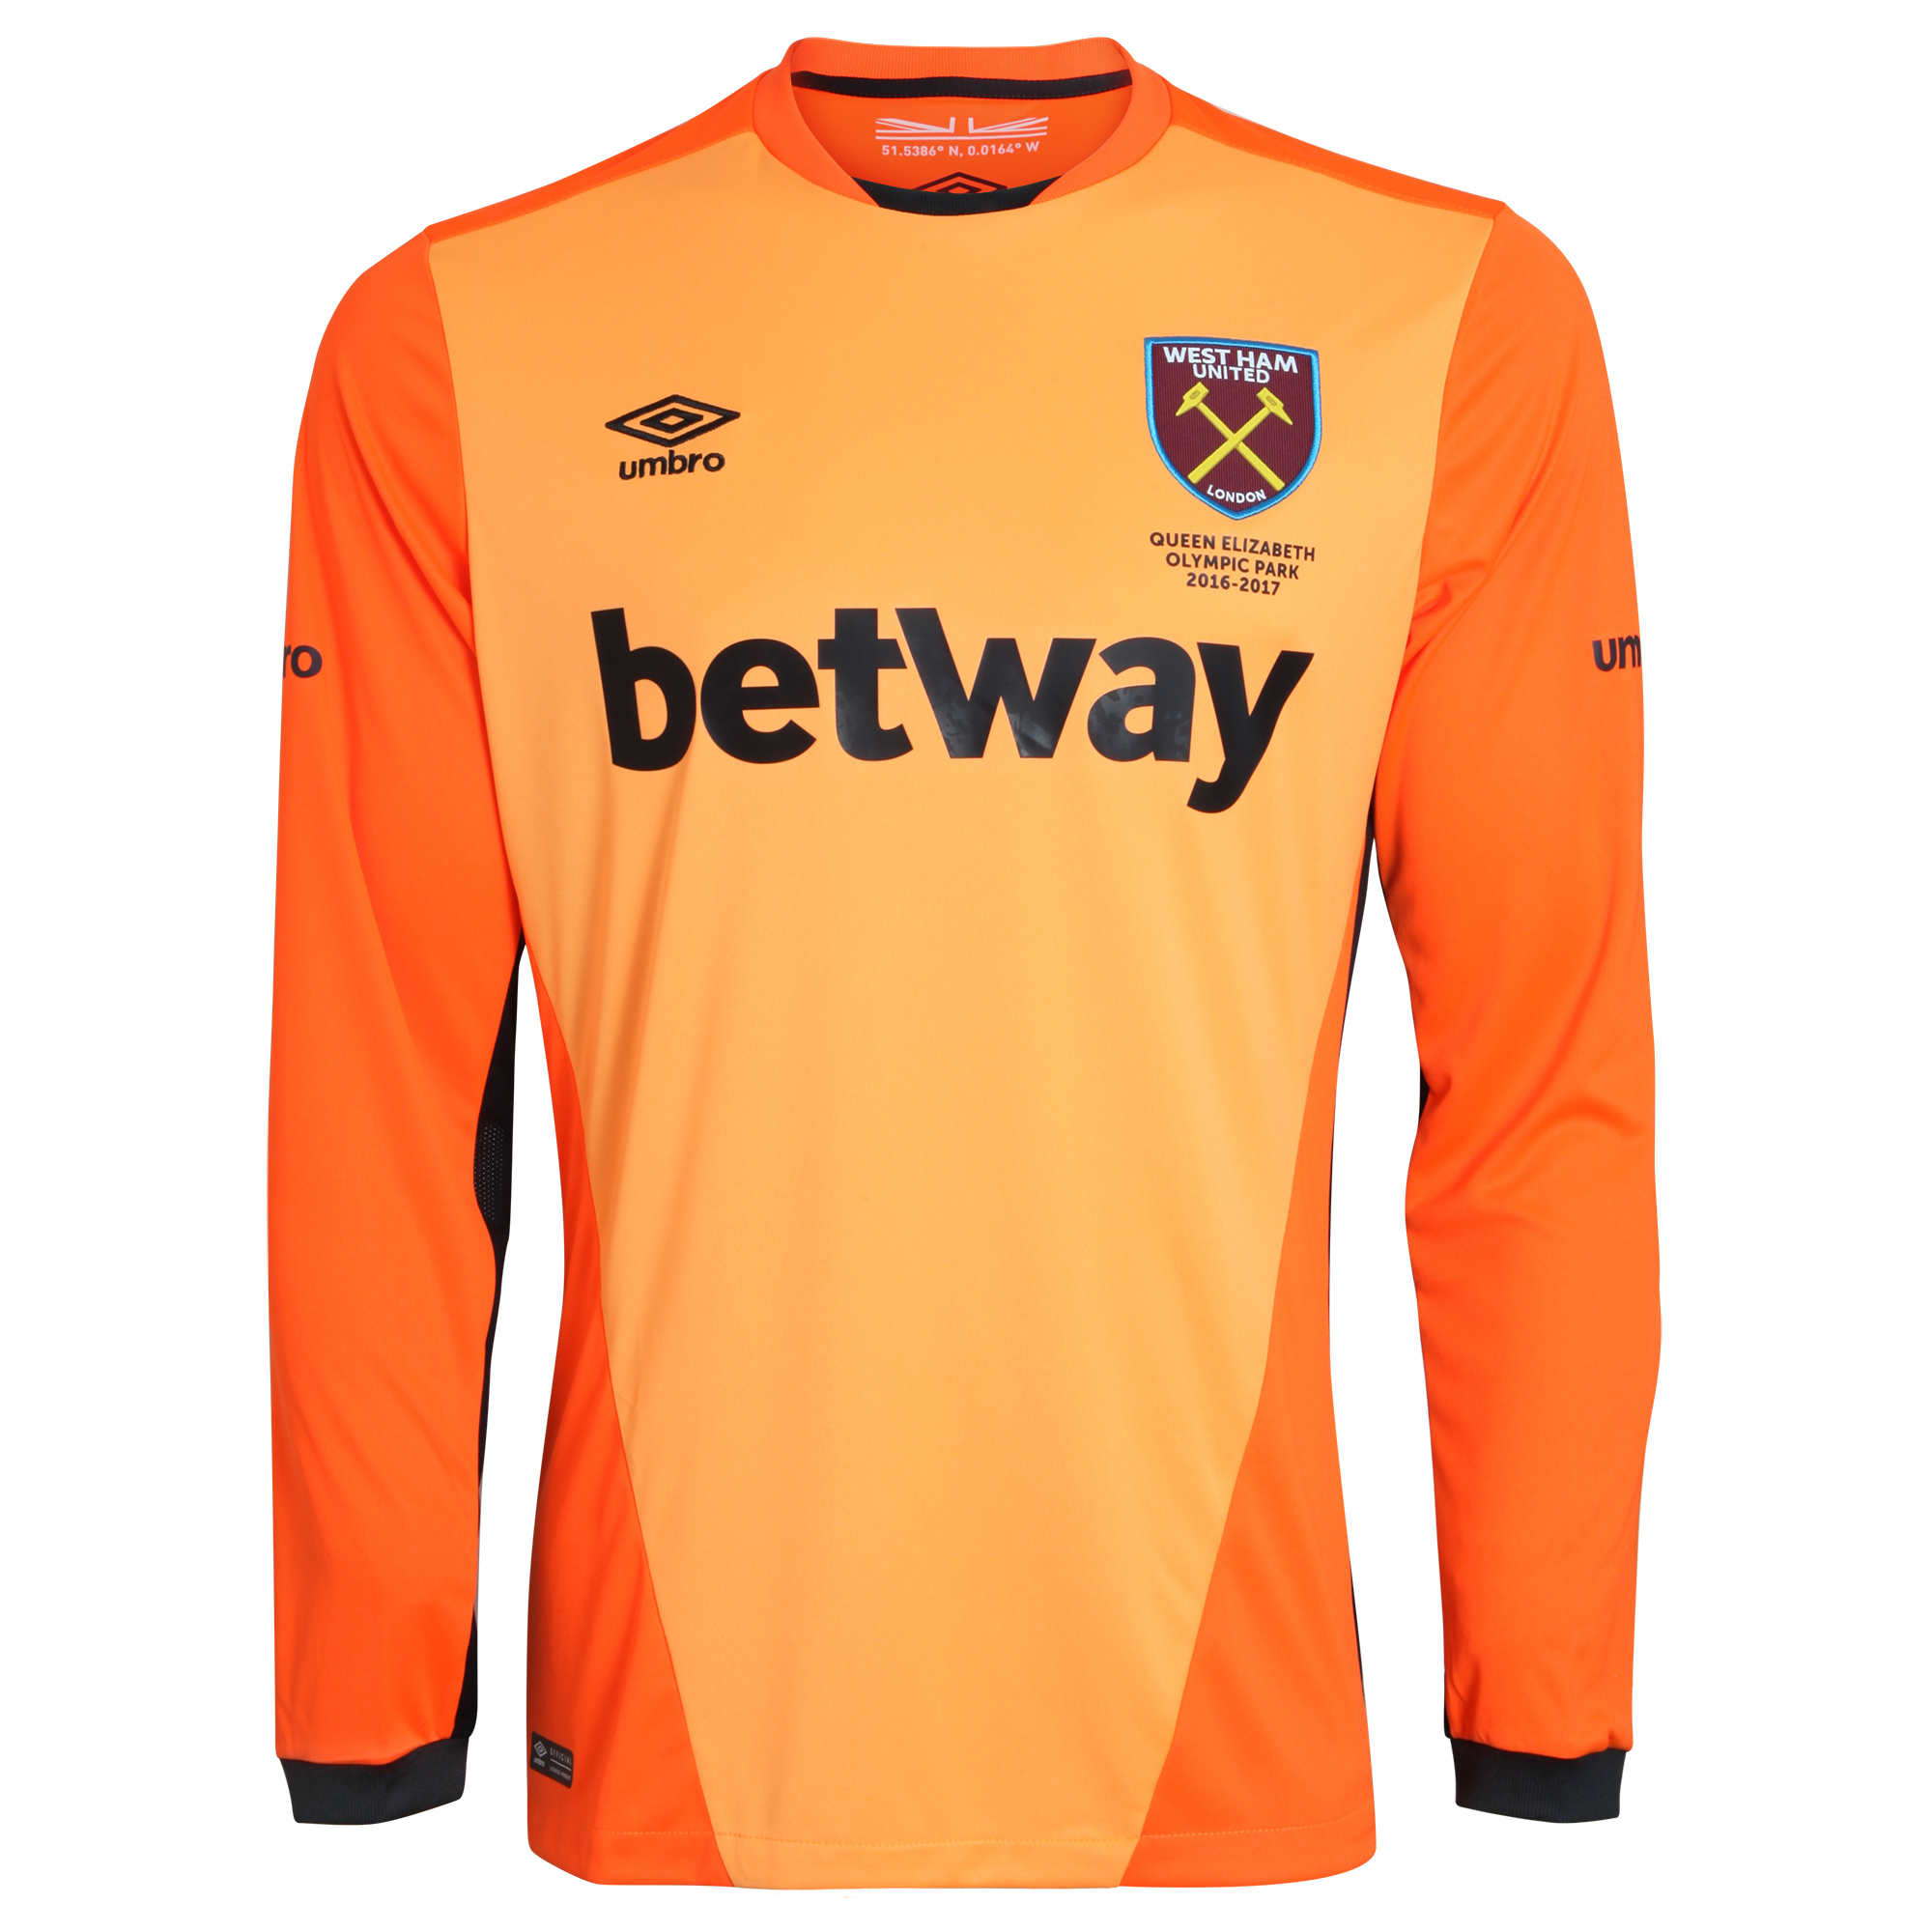 7cb741cadcf 2016-2017 West Ham Home Goalkeeper Shirt  75338U-KIT  - Uksoccershop